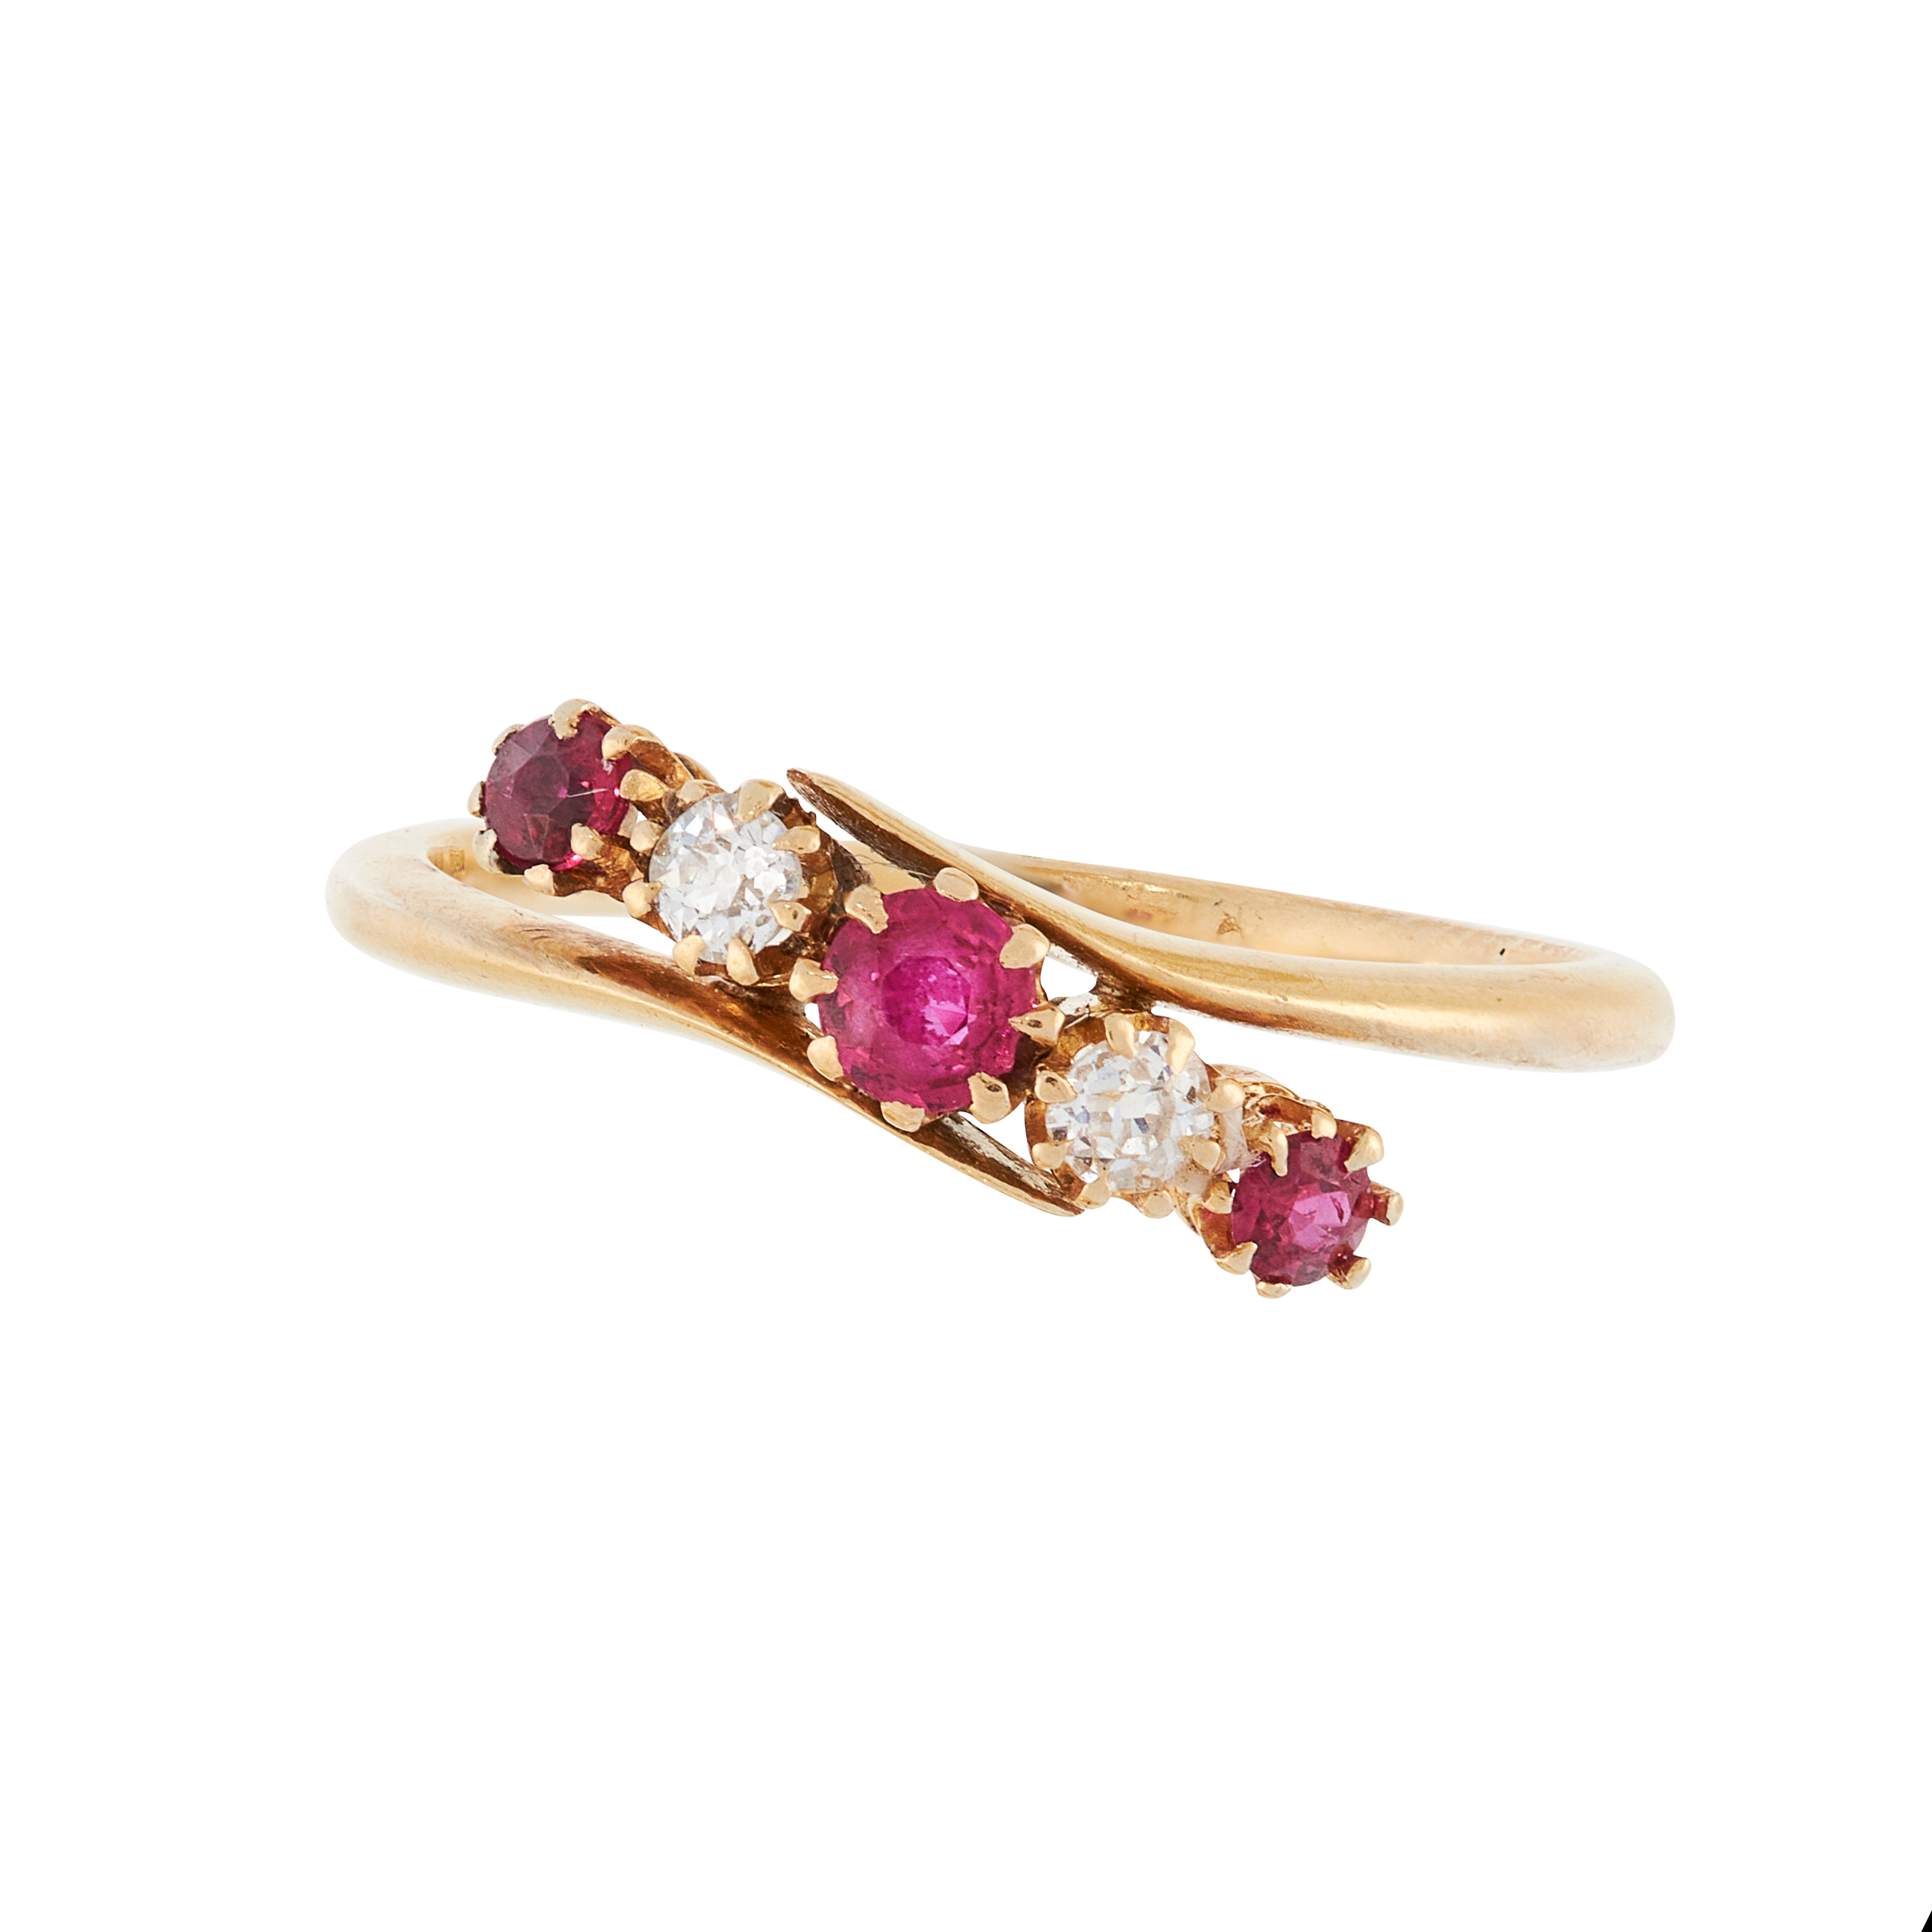 AN ANTIQUE RUBY AND DIAMOND DRESS RING, EARLY 20TH CENTURY in 18ct yellow gold, of crossover design,